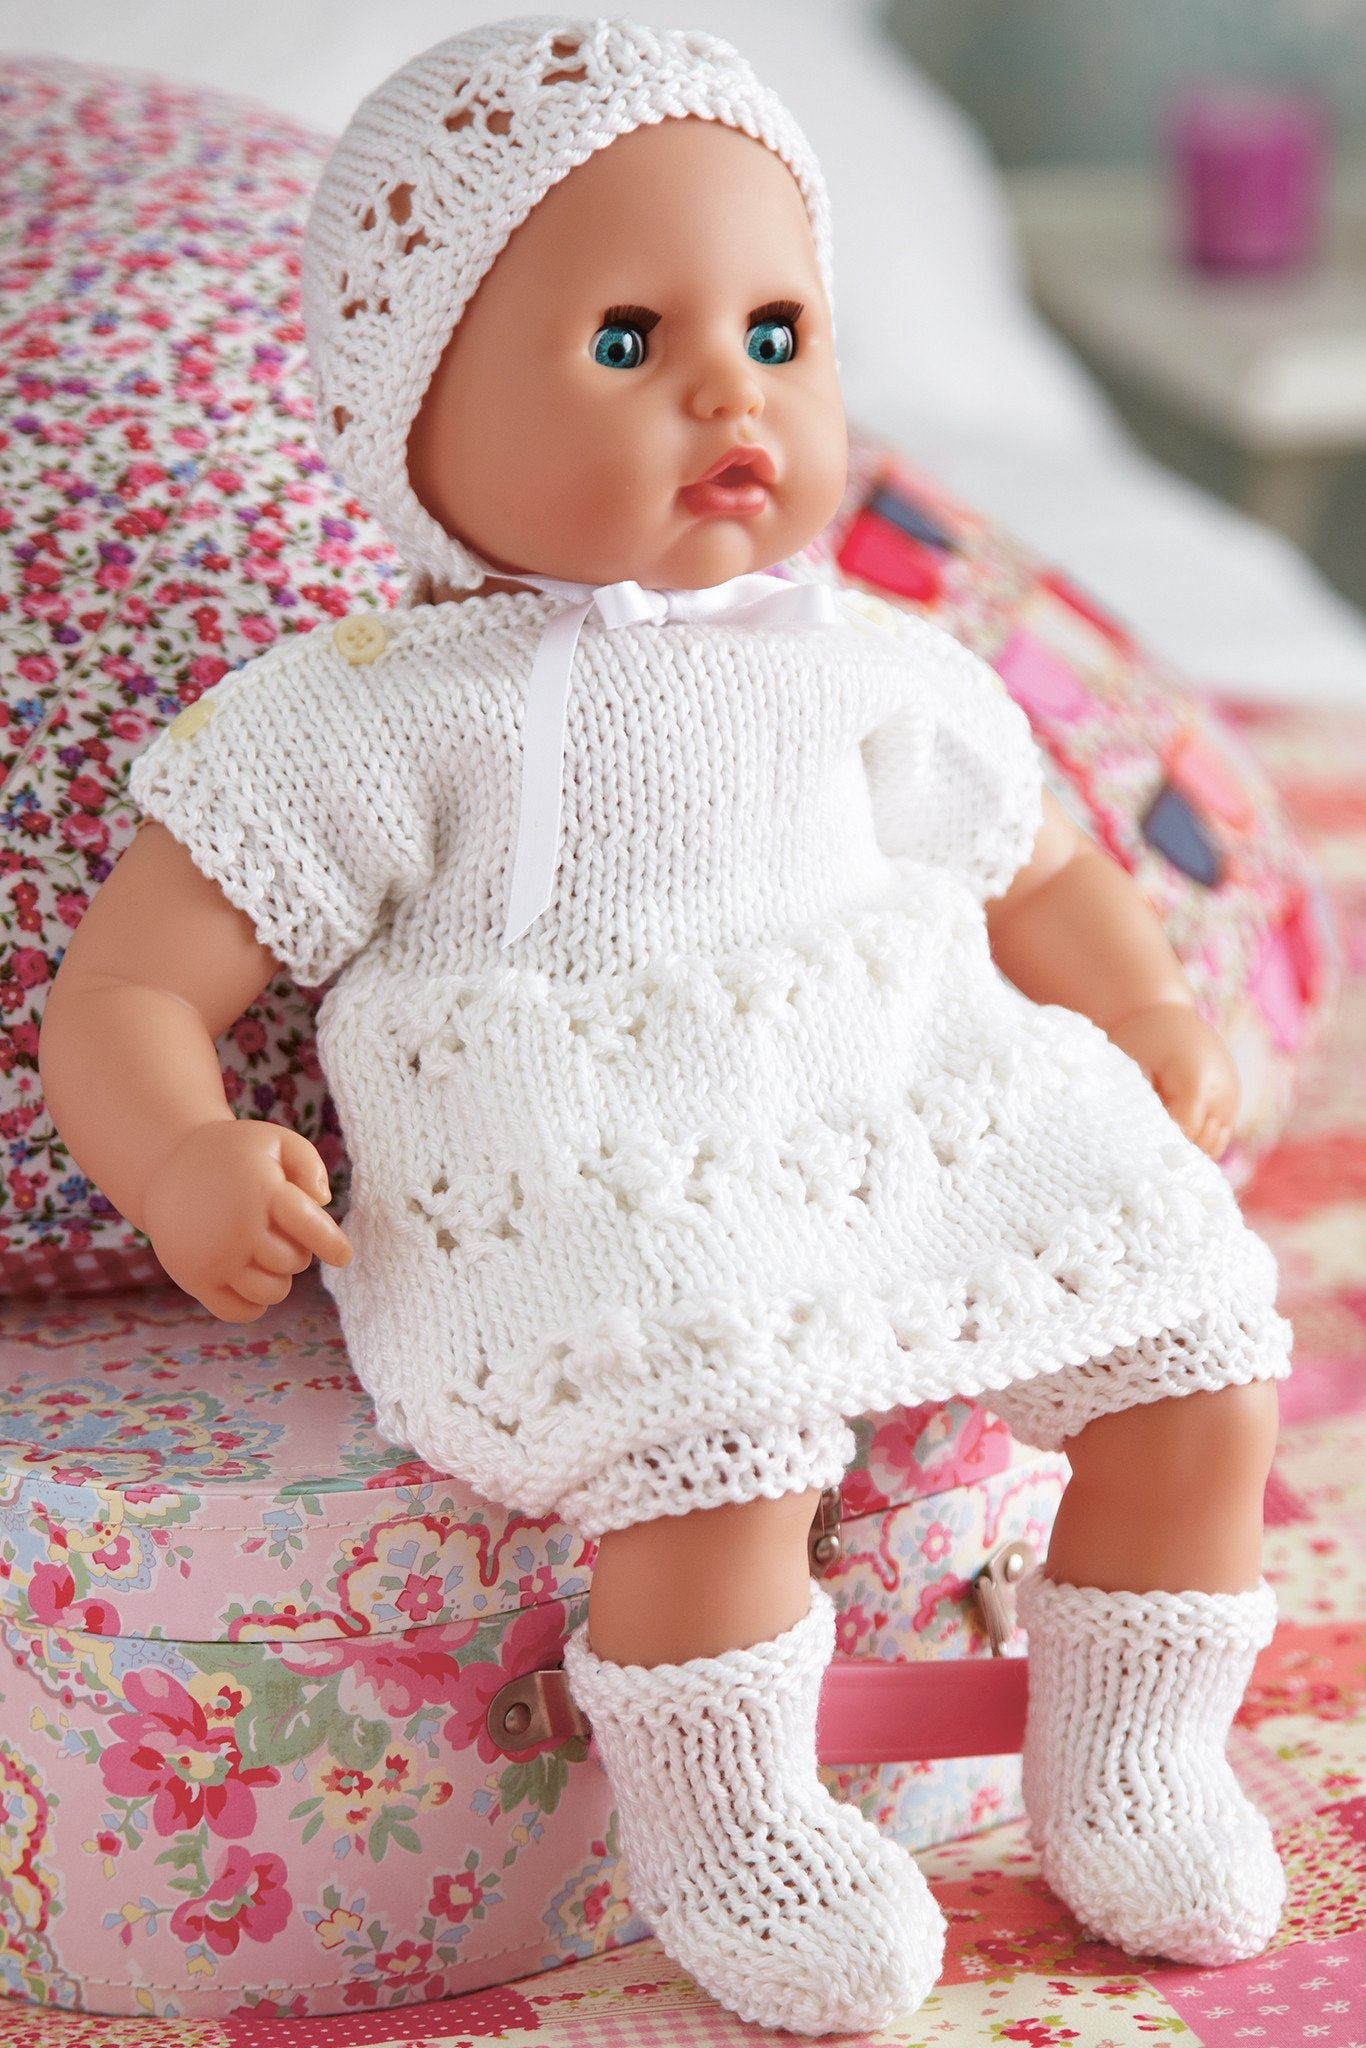 Baby Doll Clothes Set Knitting Pattern – The Knitting Network